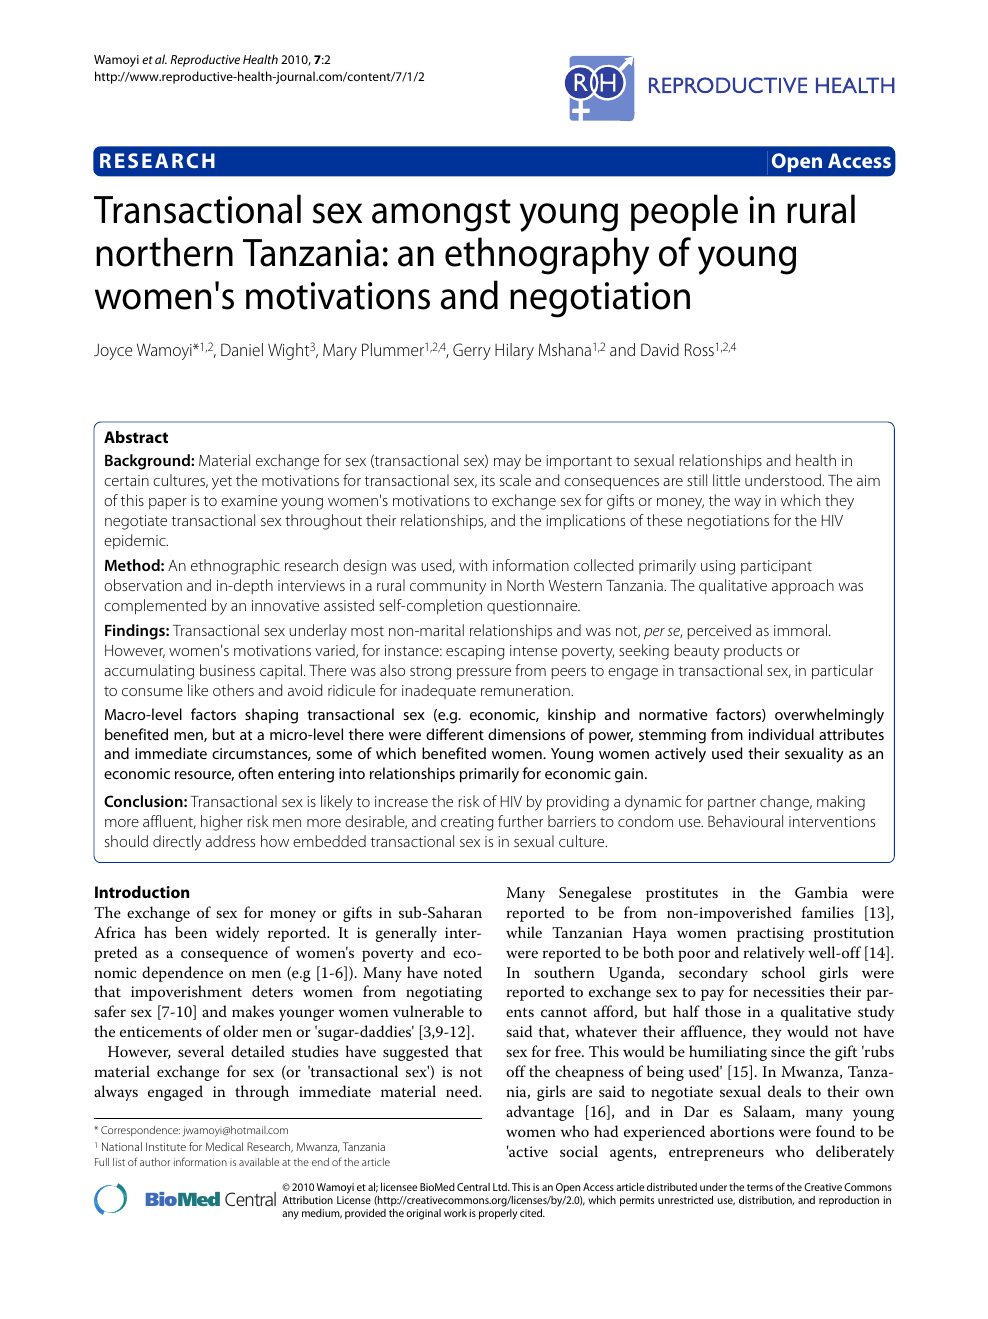 people sexual area Young health rural